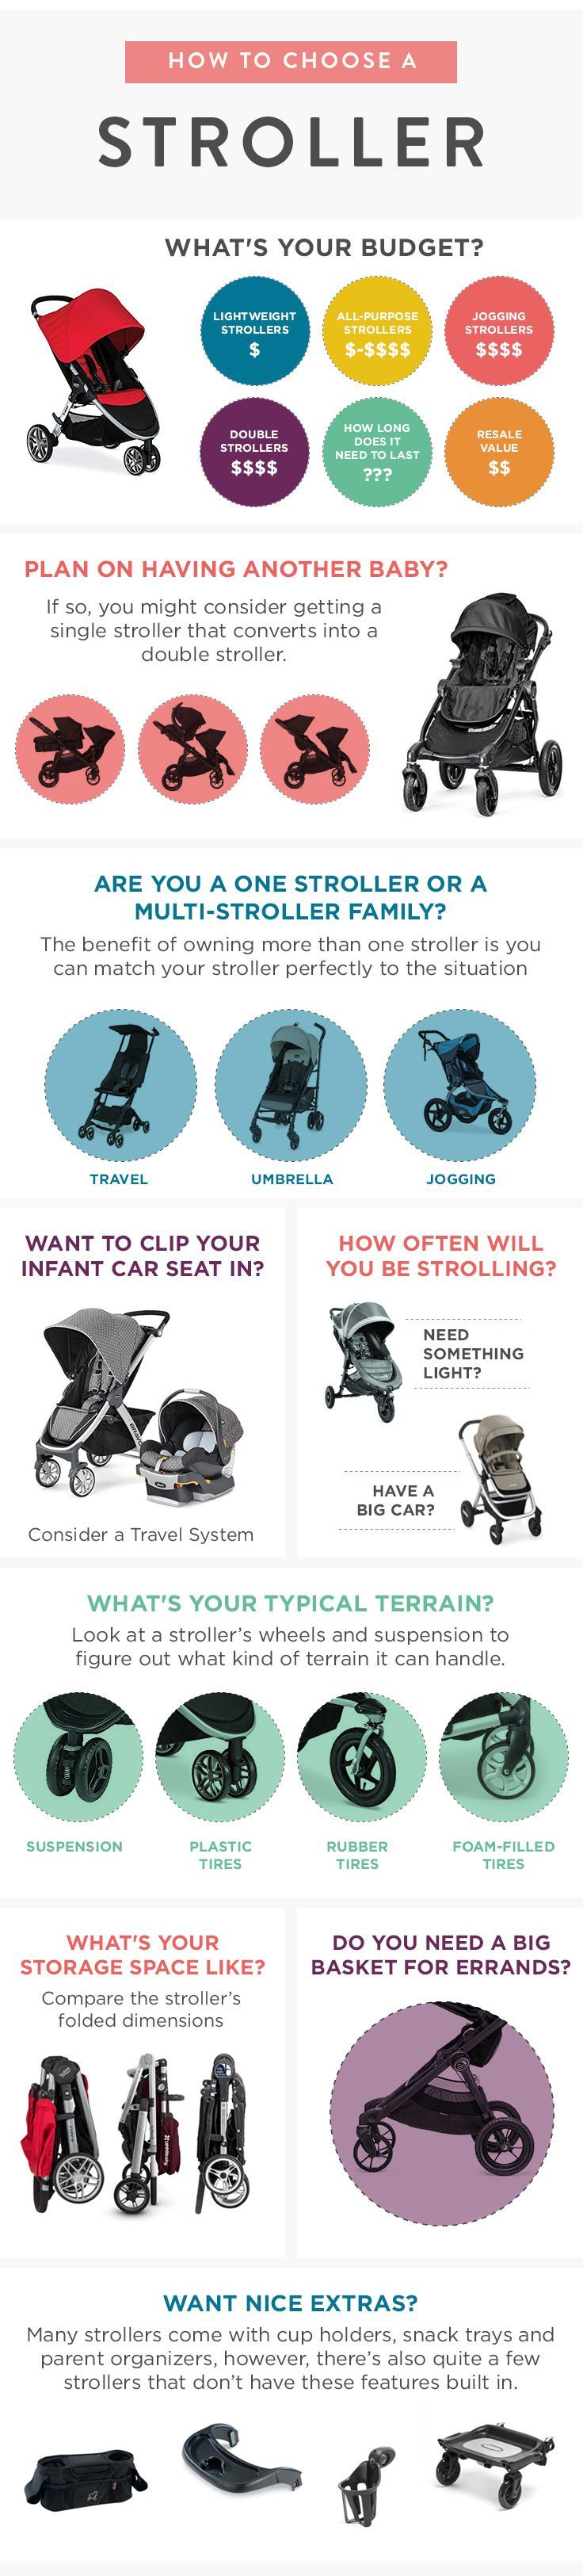 How to Find a Stroller You'll Fall in Love With Cars for